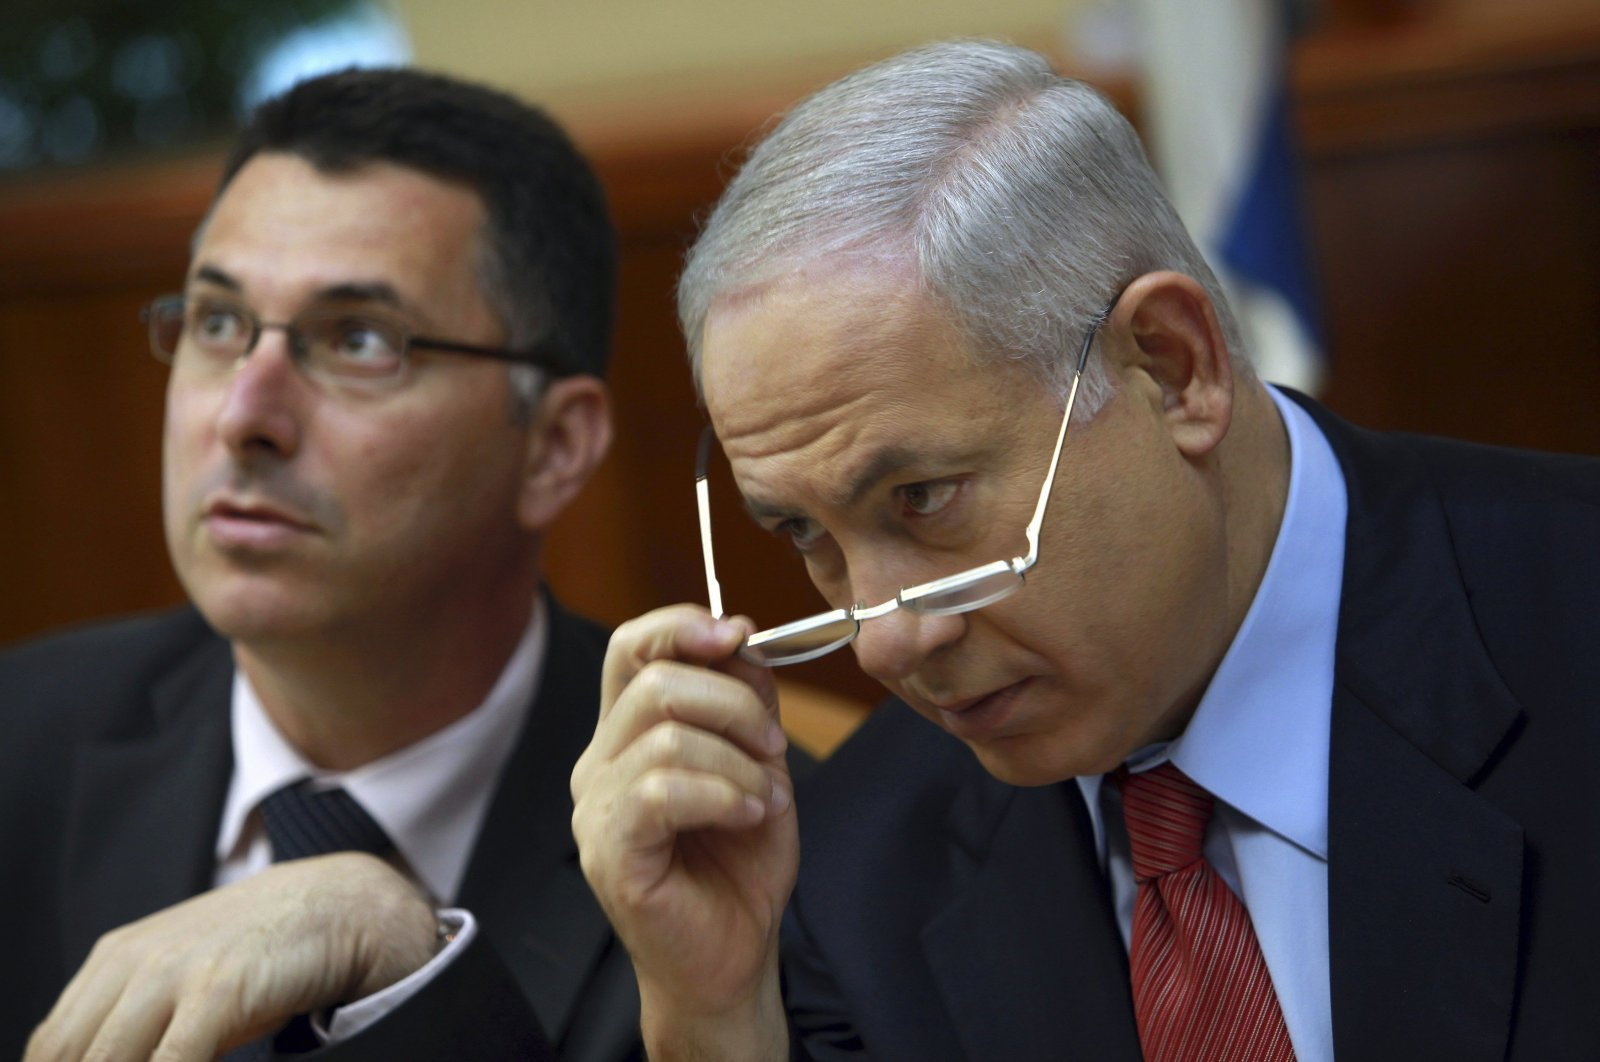 Israel's Prime Minister Benjamin Netanyahu (R) and then-Education Minister Gideon Saar attend a weekly Cabinet meeting in Jerusalem, Oct. 18, 2009. (Reuters Photo)